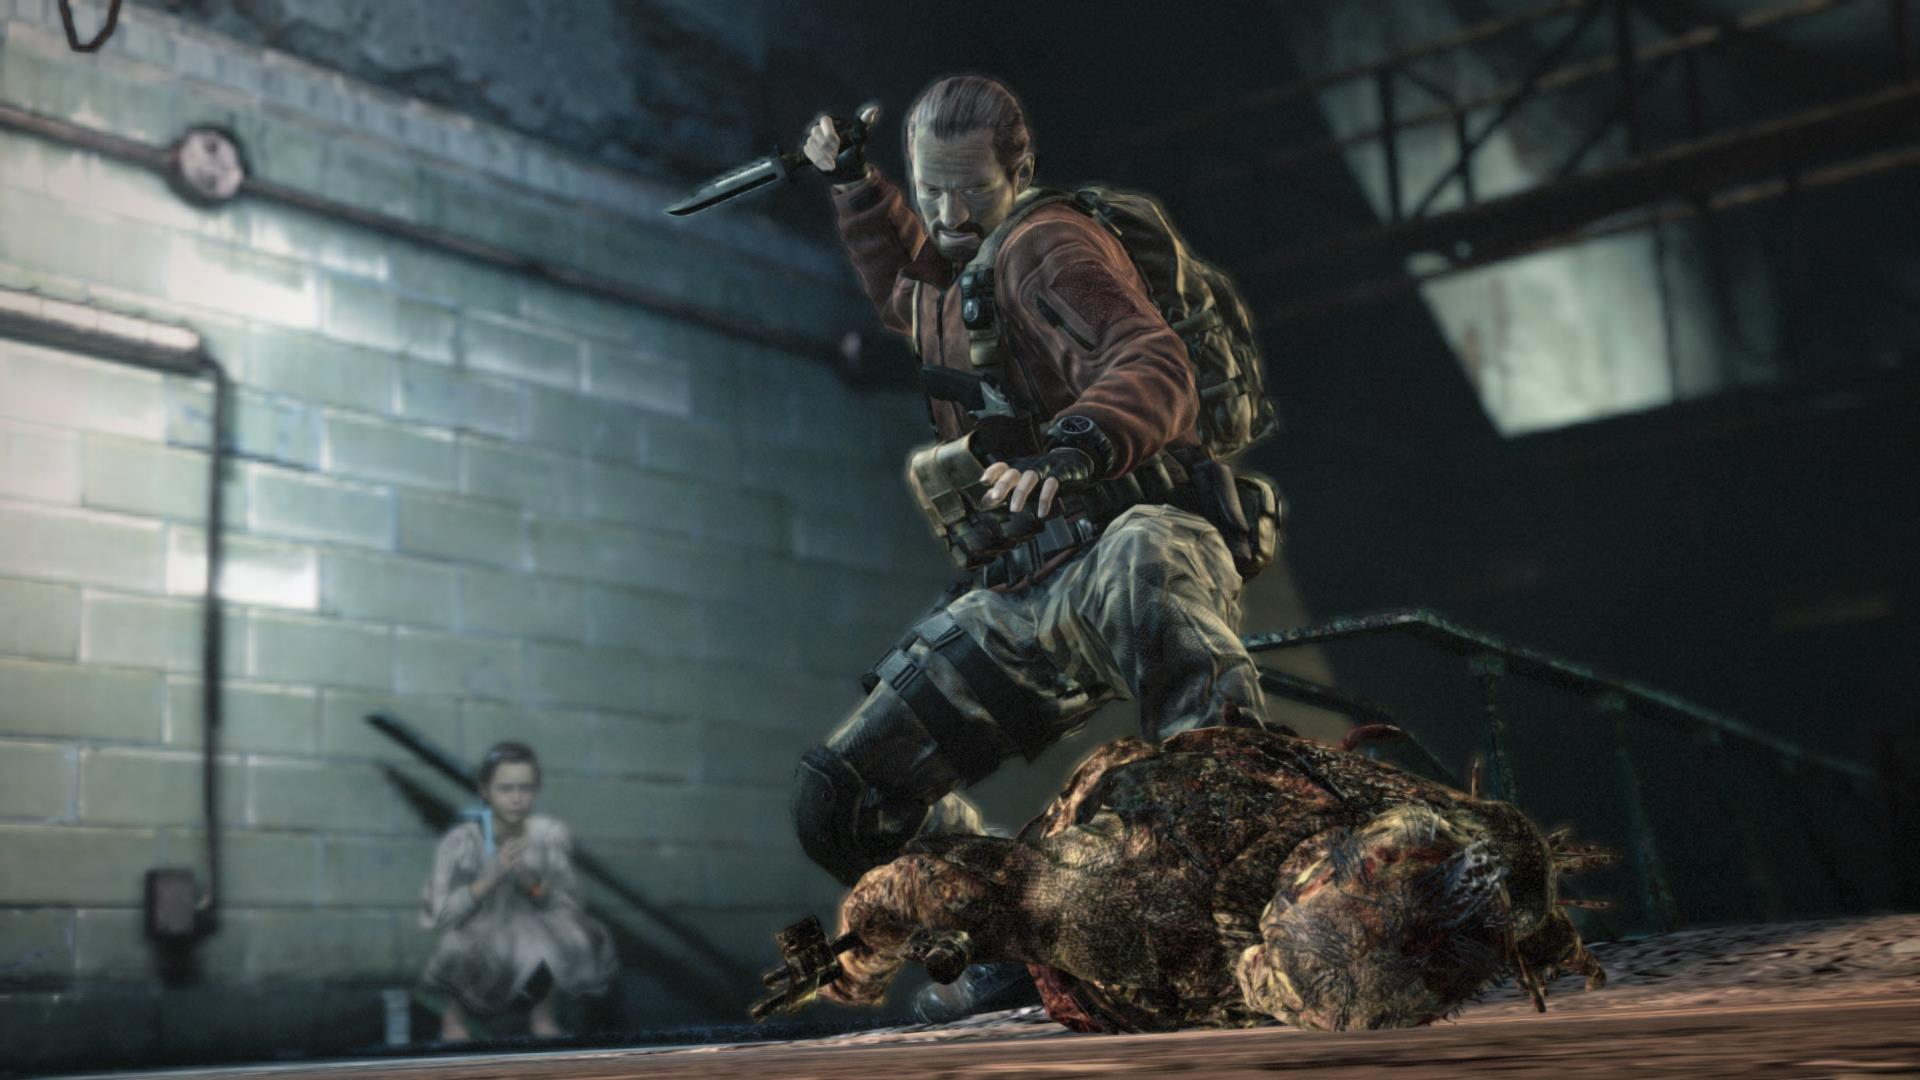 Resident Evil Revelations 2 is out now on Vita, but looks a little ropey and needs a 900MB patch